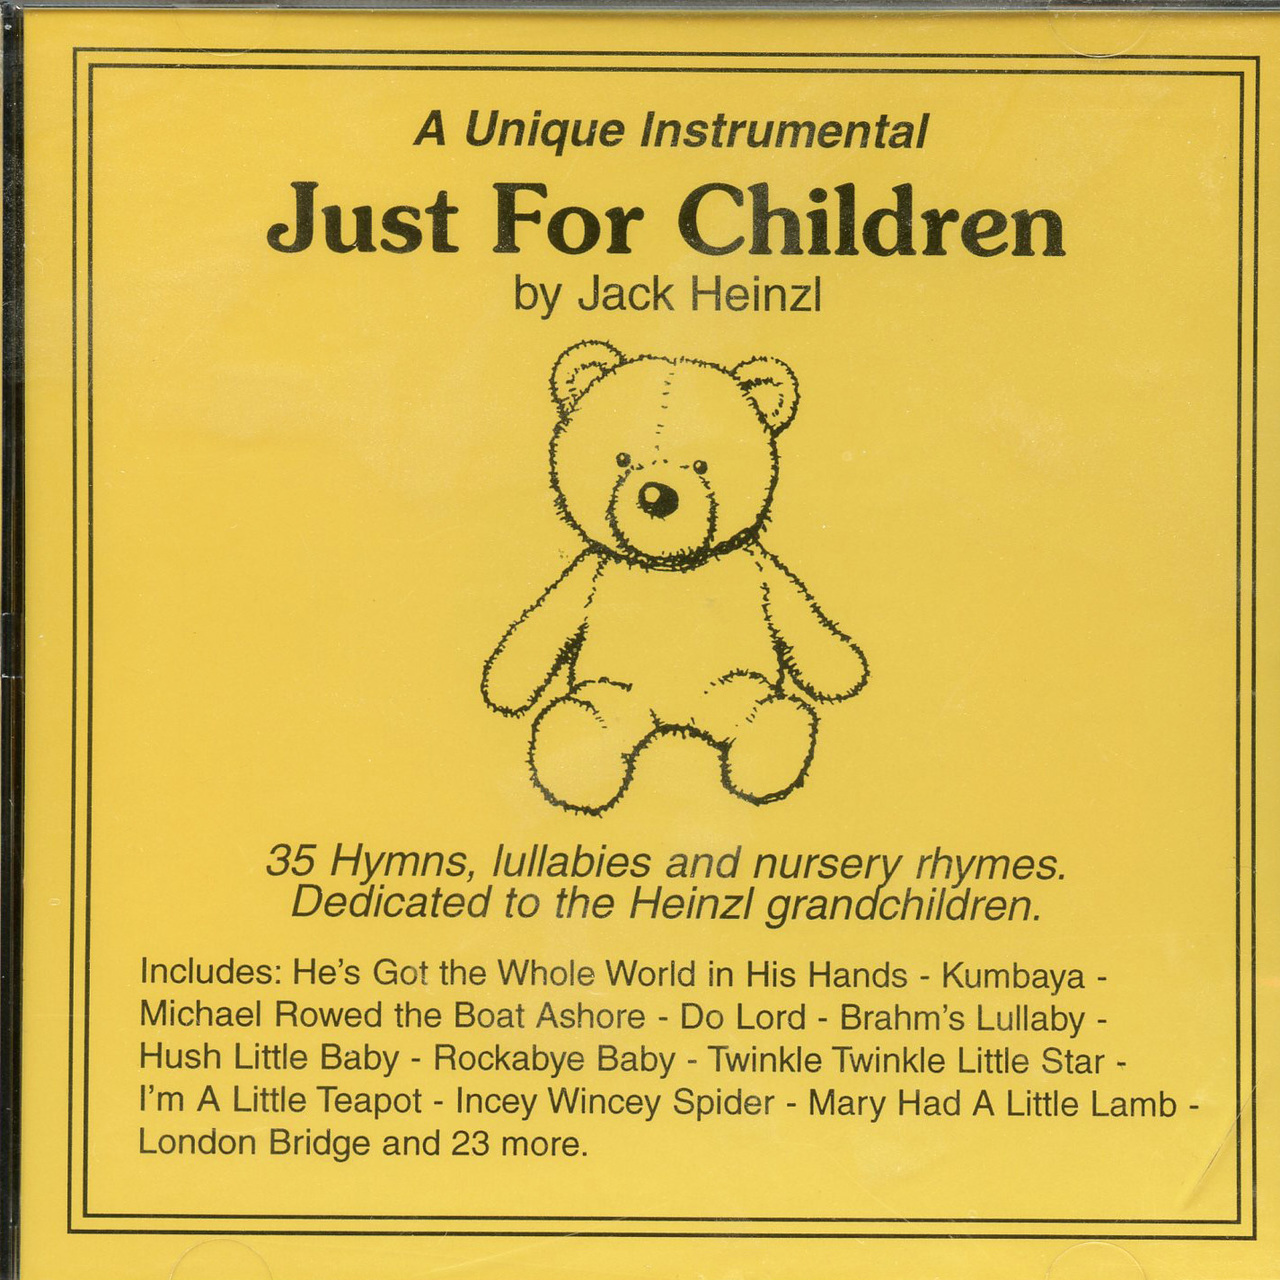 Just for children by jack heinzl